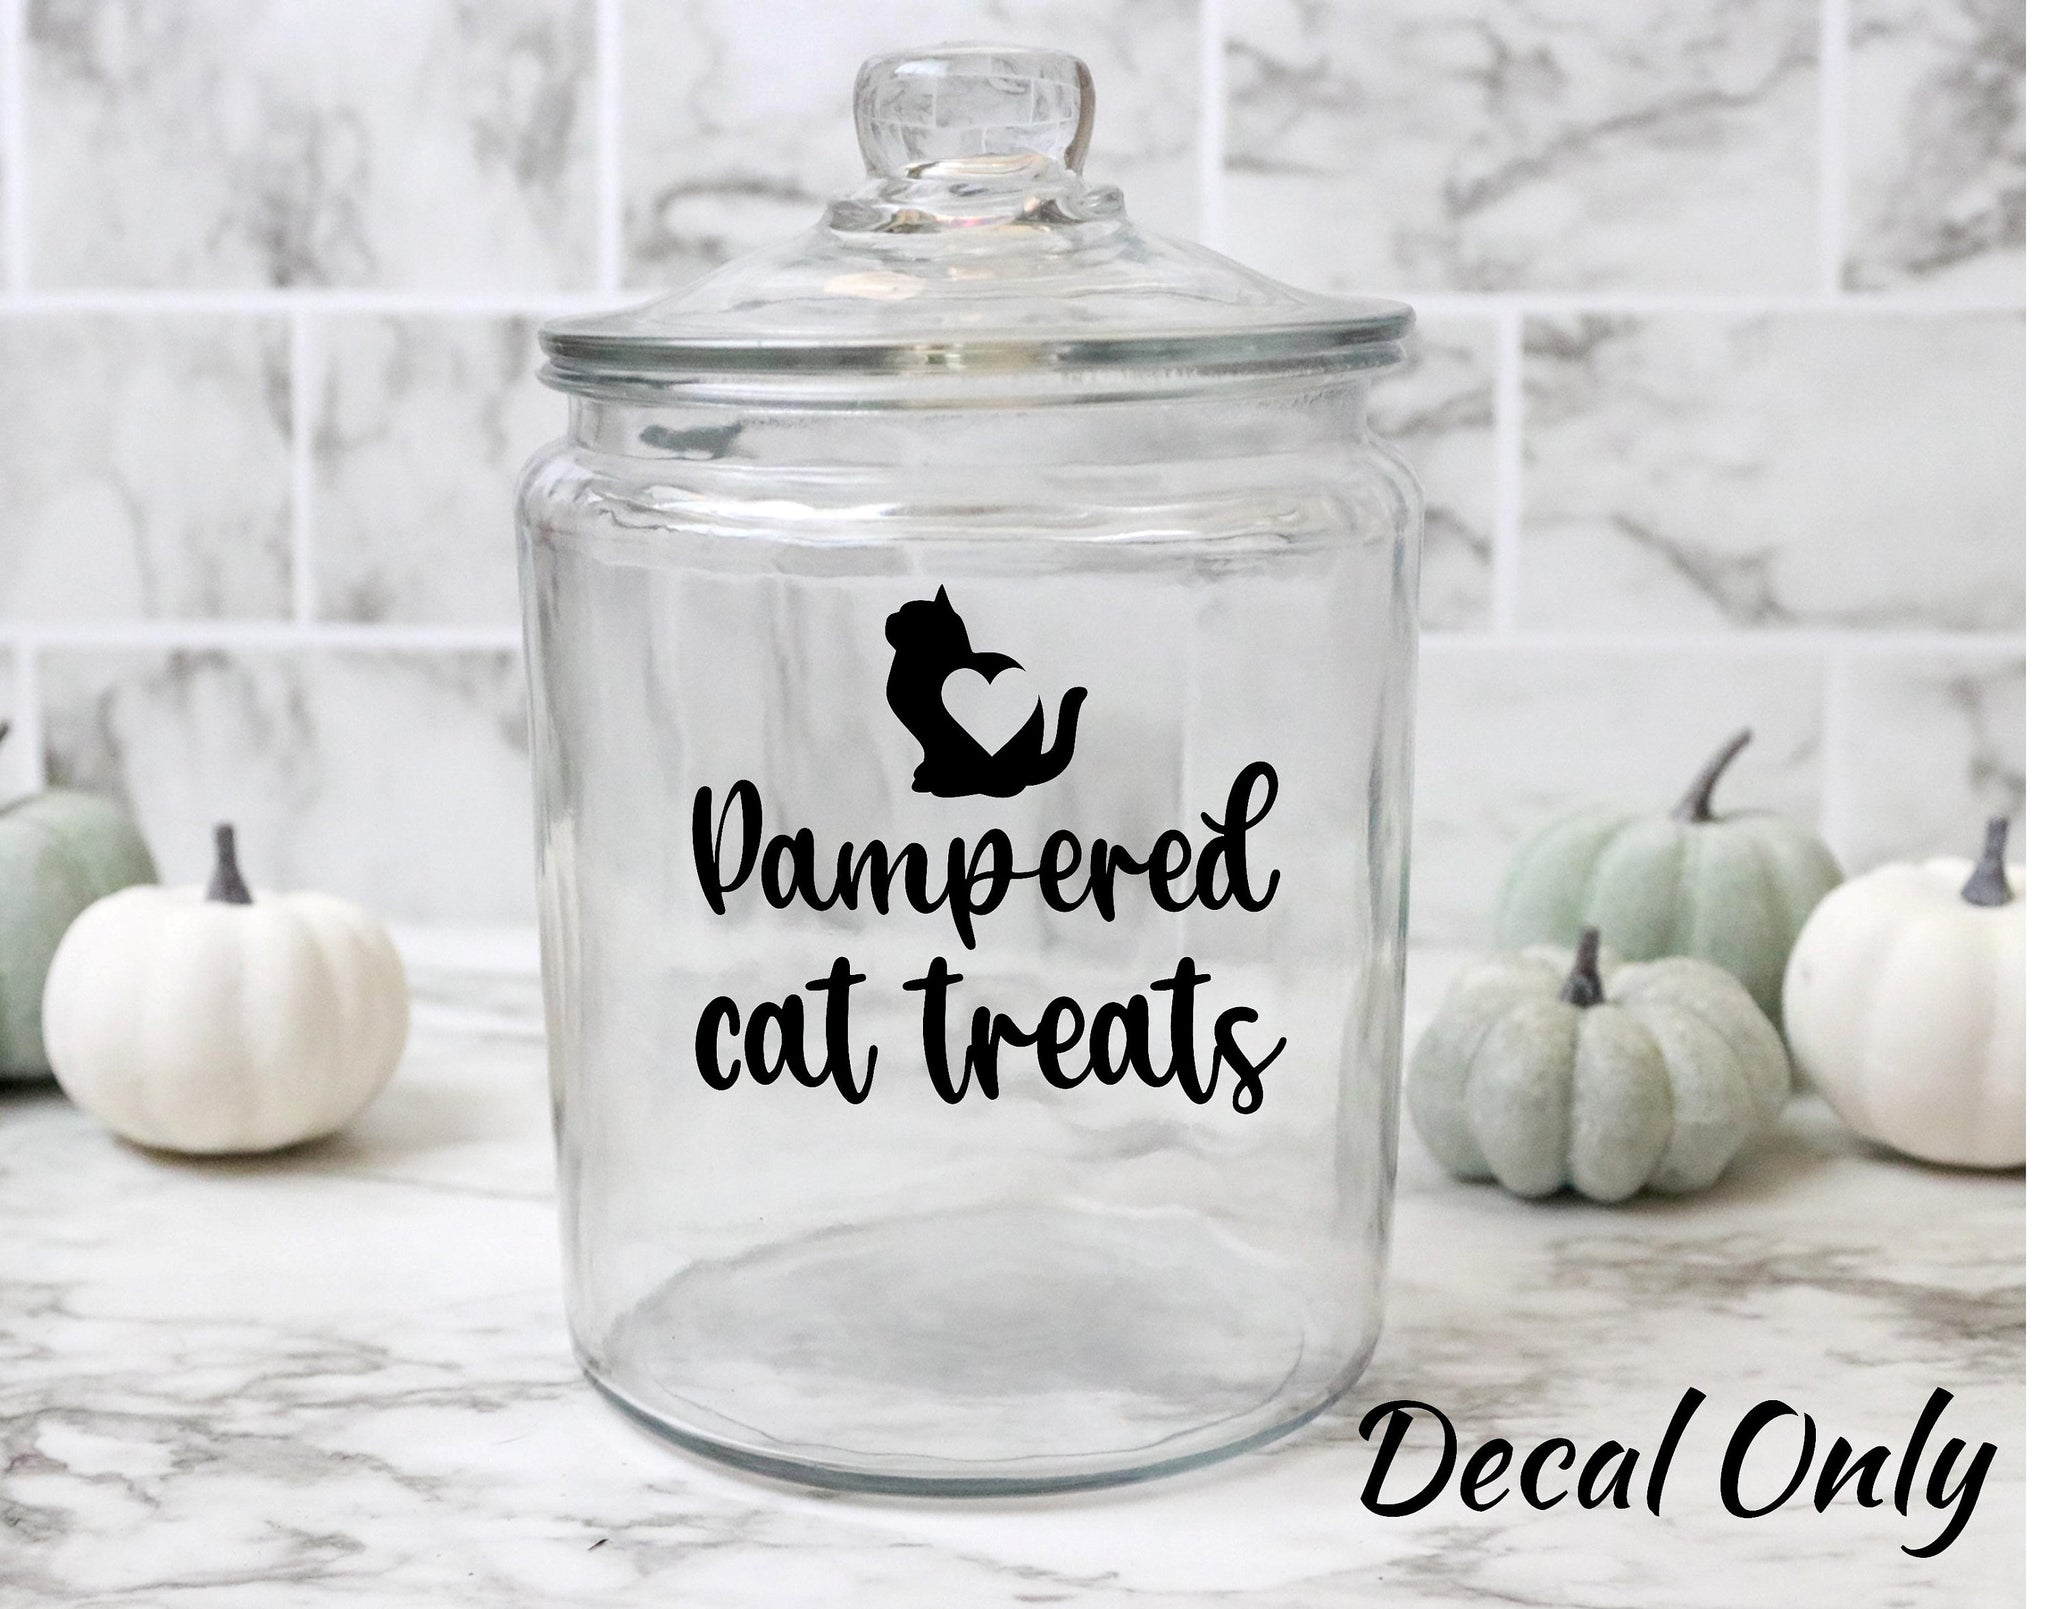 Pampered Cat Treats Vinyl Decal Sticker